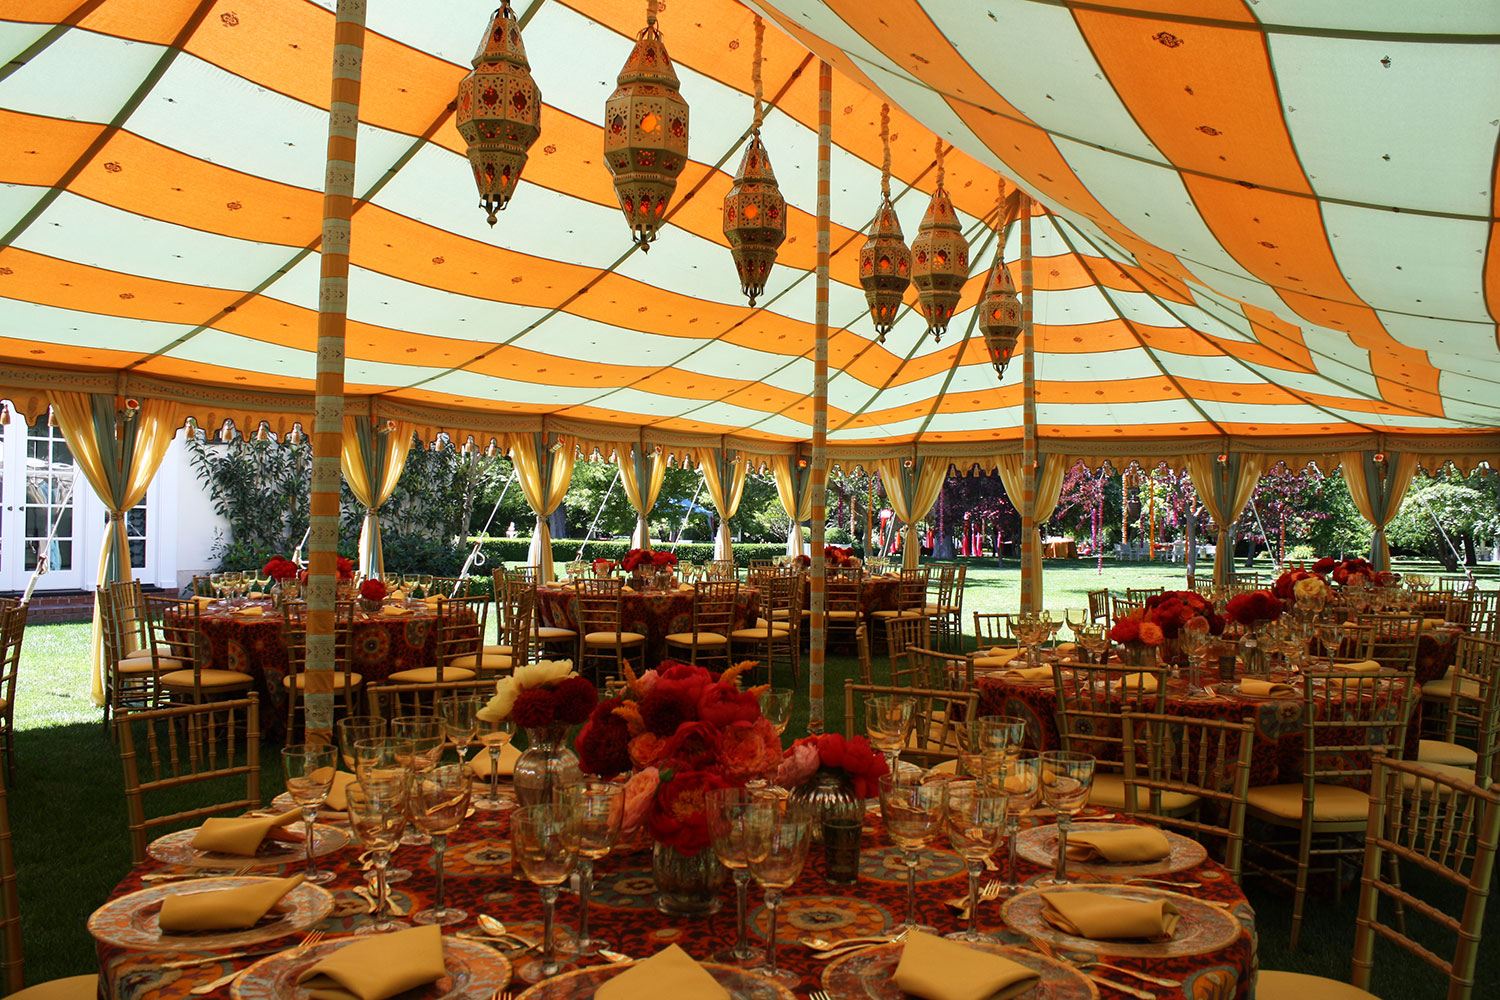 raj-tents-maharaja-dinner-setting-with-lamps.jpg